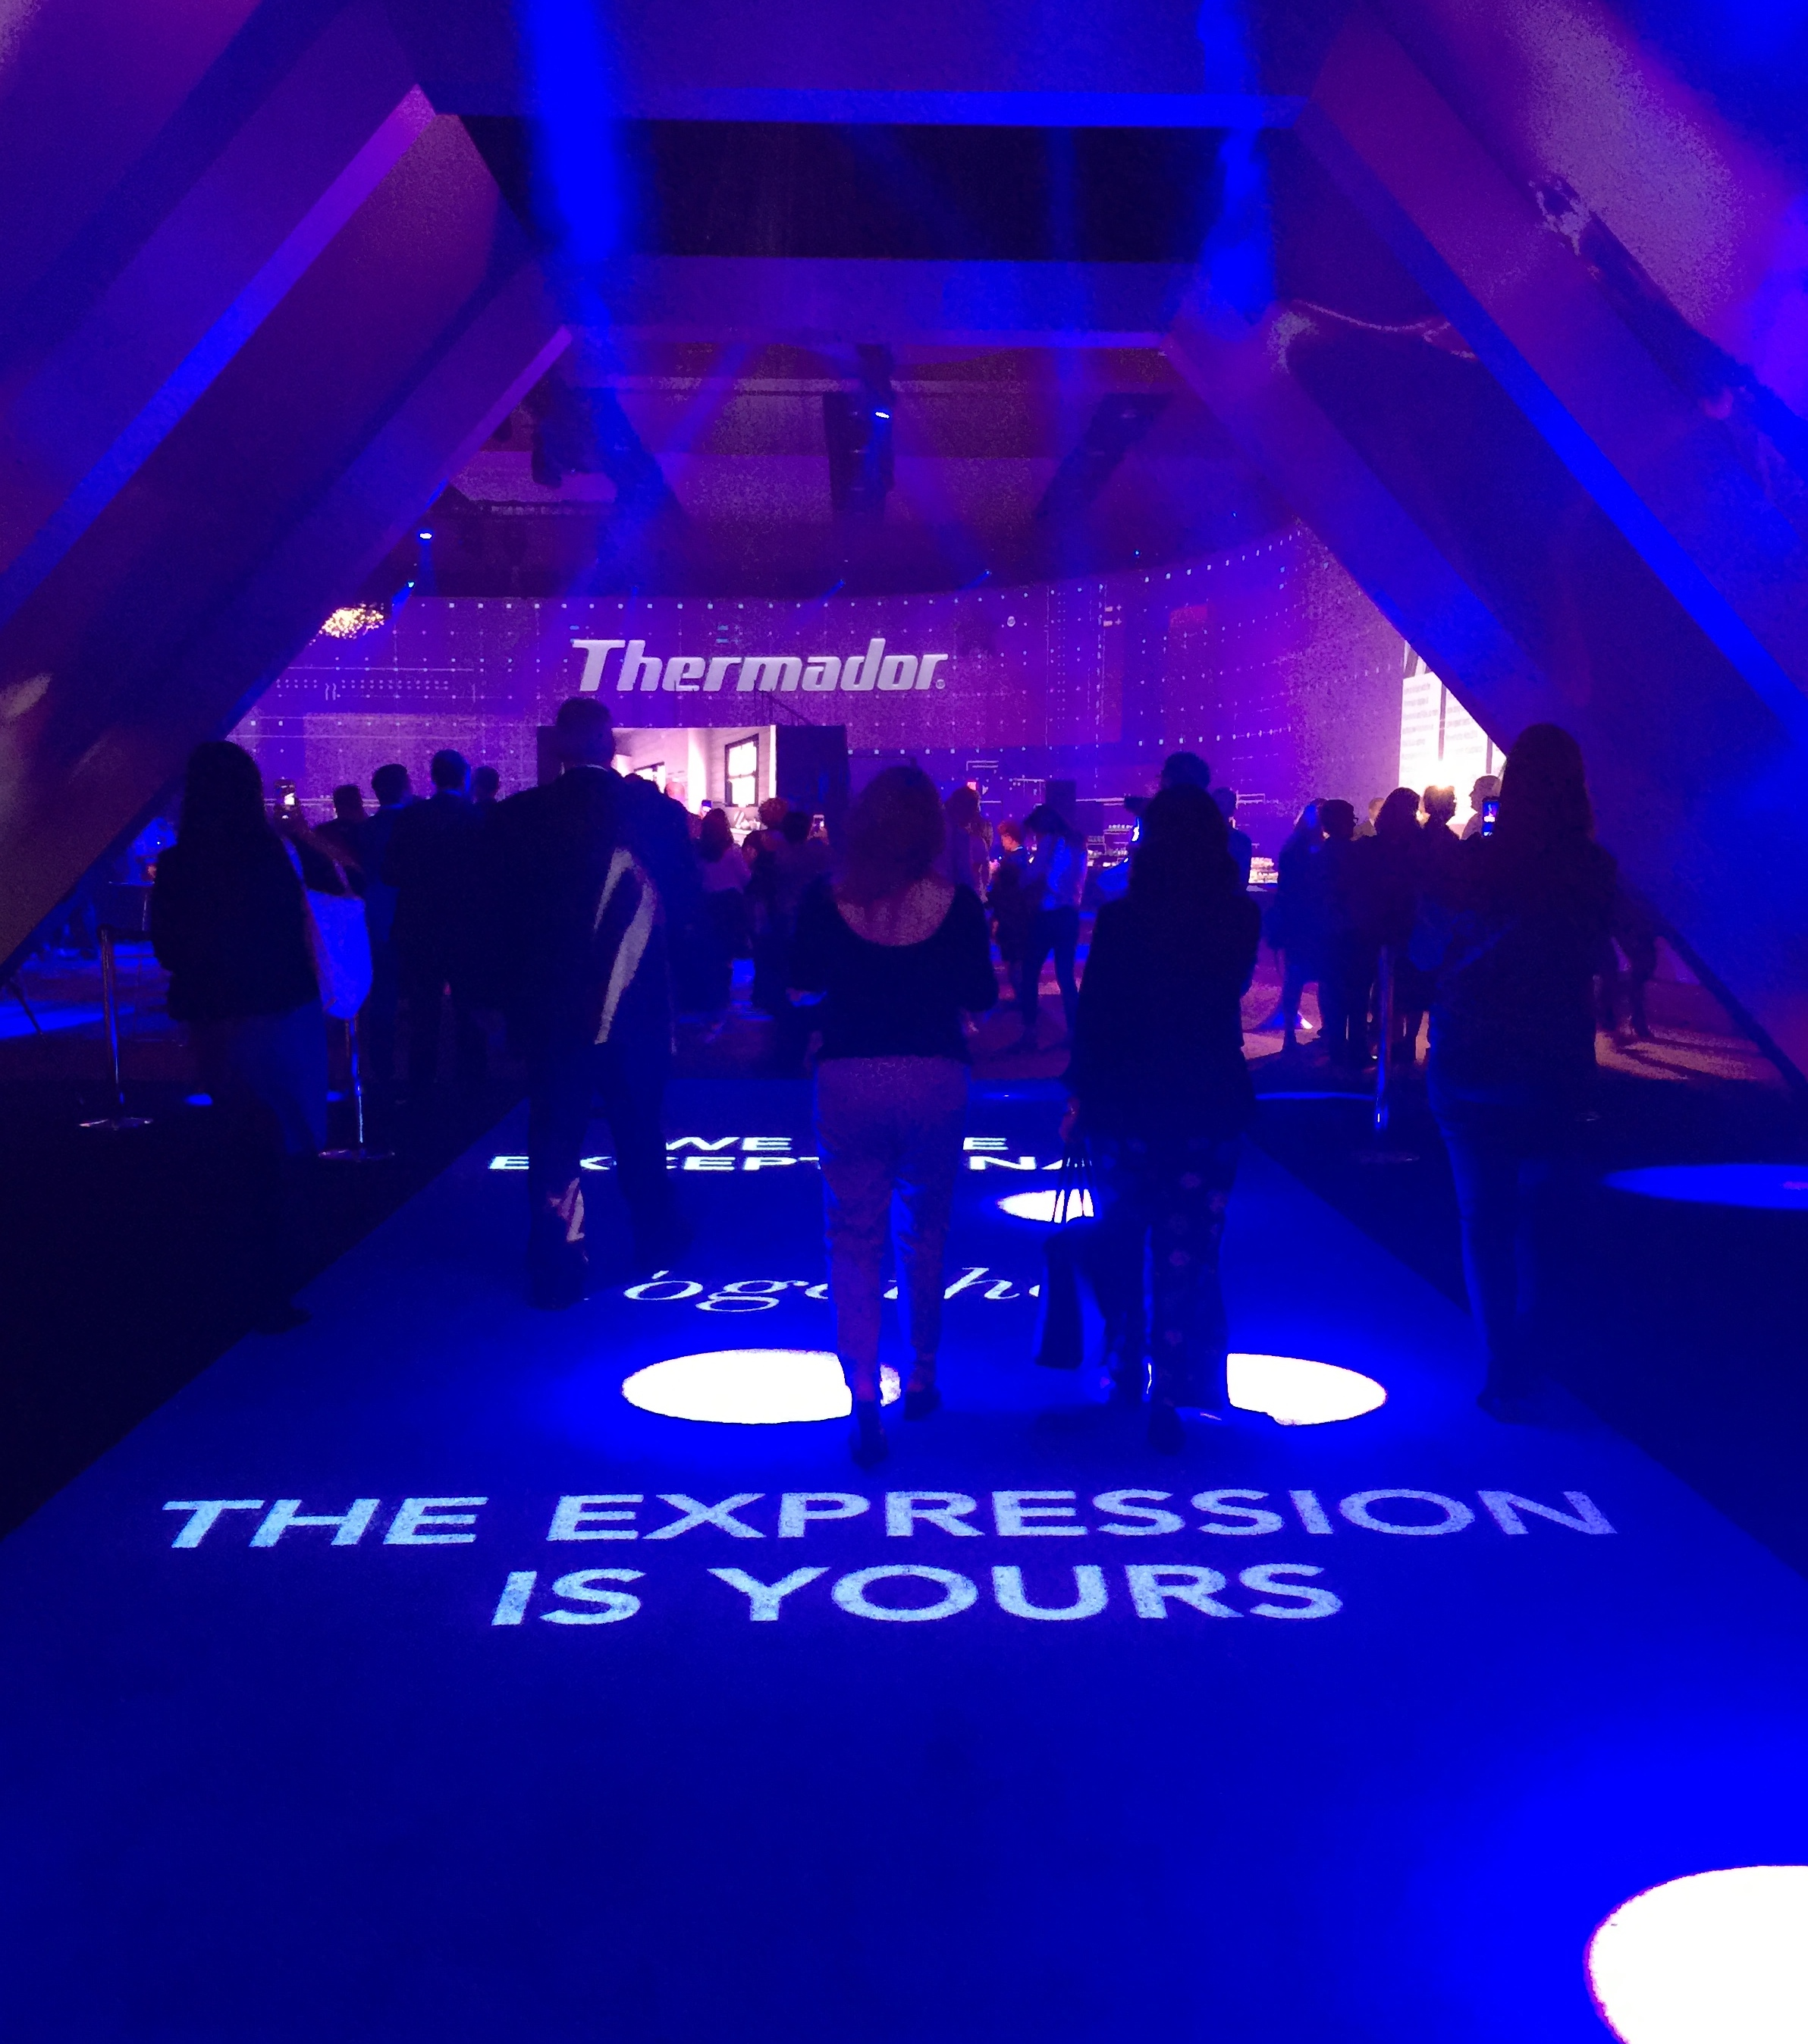 Thermador party at KBIS2018 #partytime #thermador